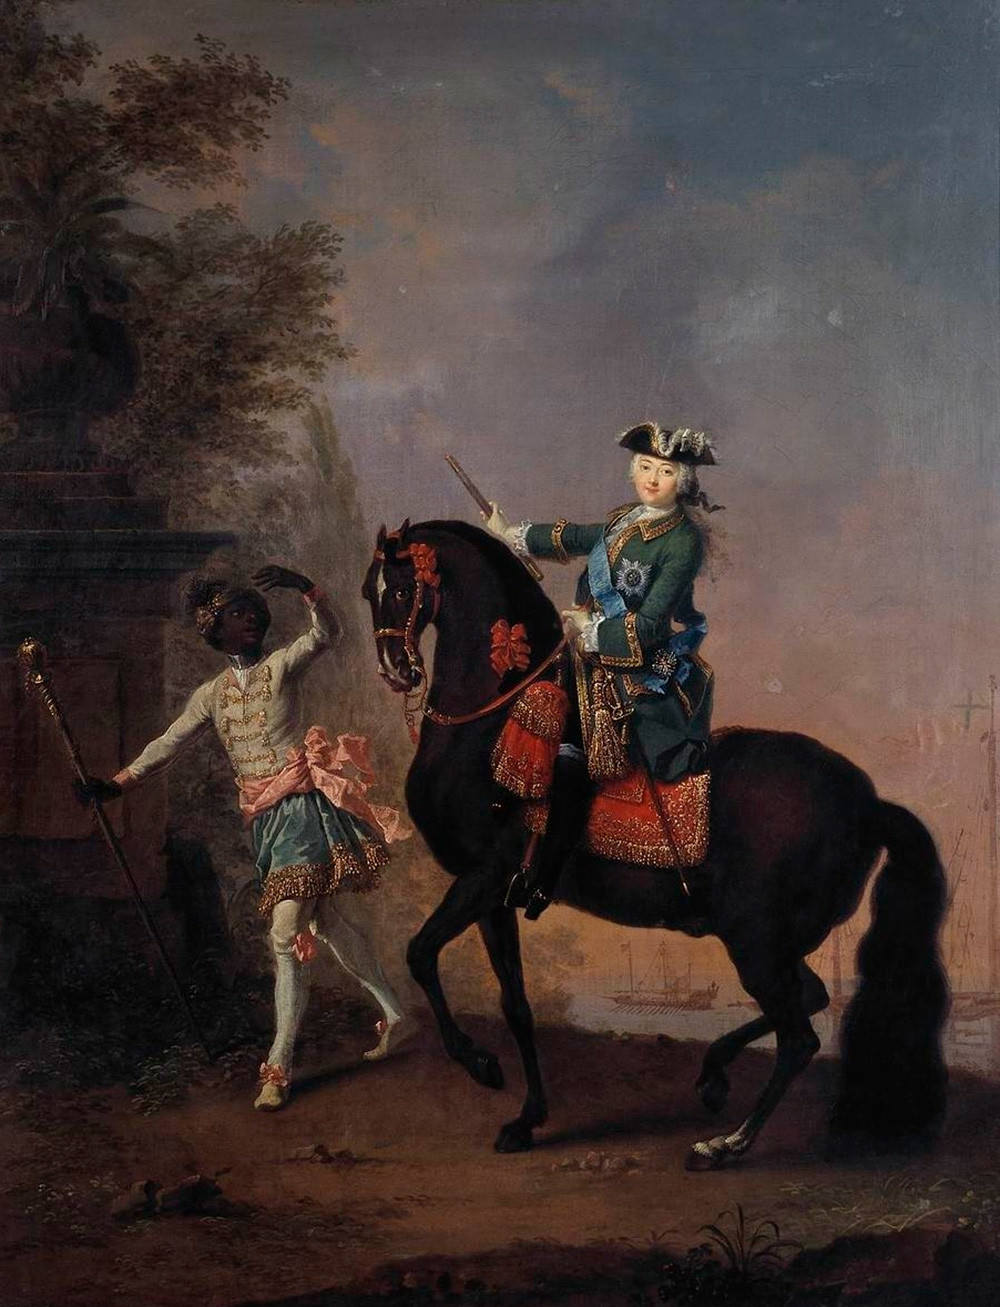 'The Empress Elizabeth of Russia on Horseback, Attended by a Page,' 1743, by Georg Christoph Grooth (1716-1749)